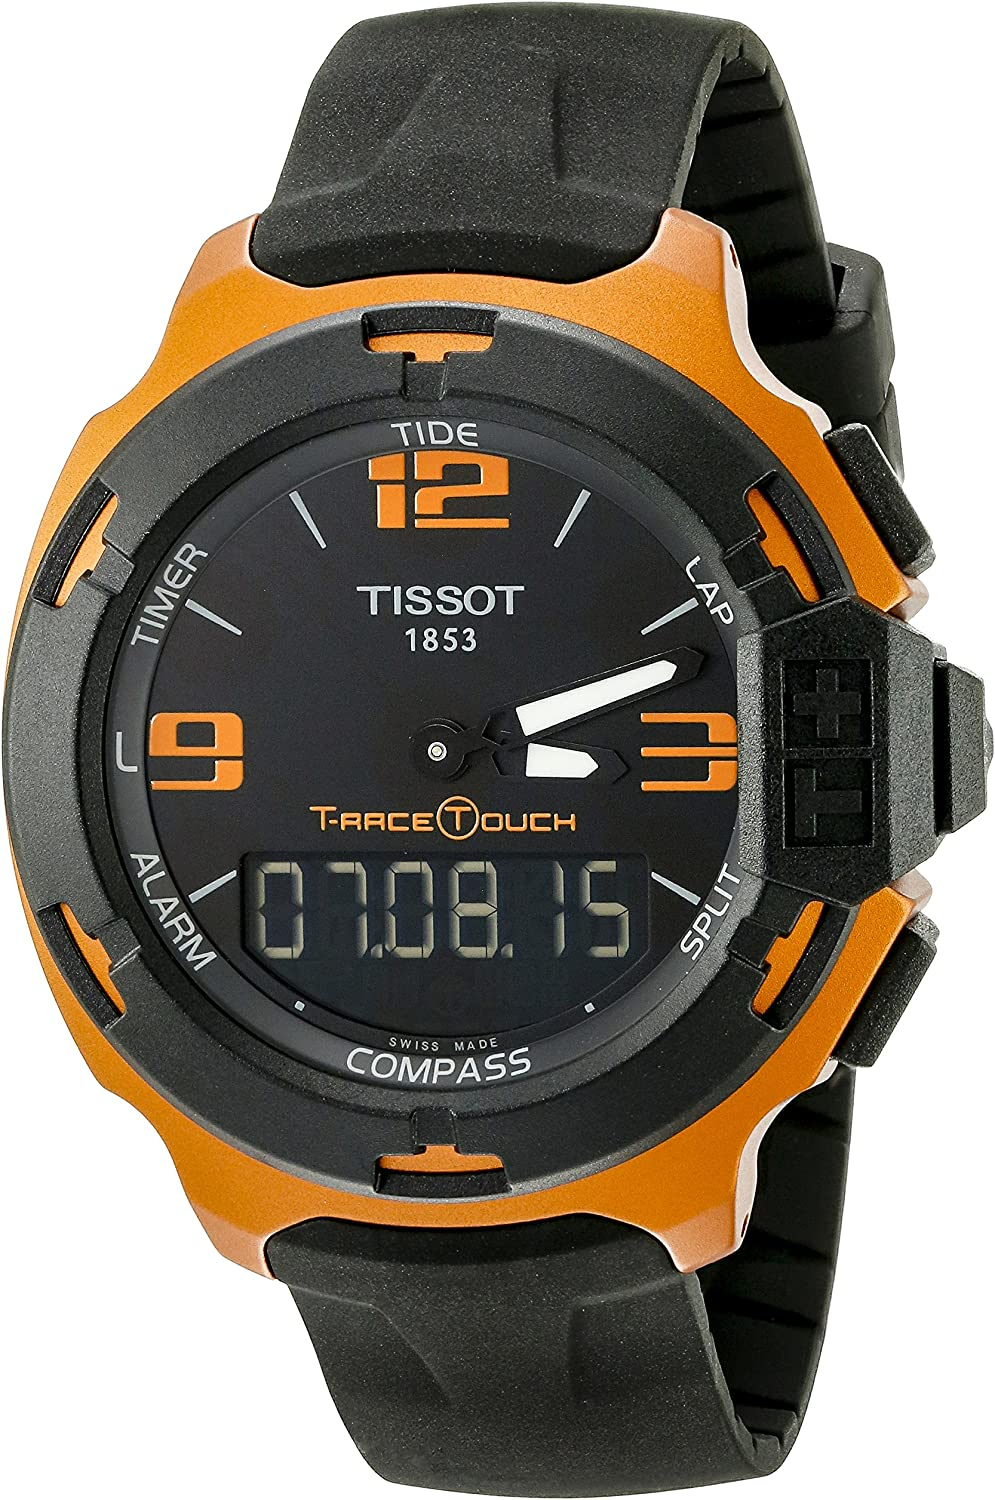 Tissot Men s T0814209705703 T-Race Touch Aluminum Watch with Black Band